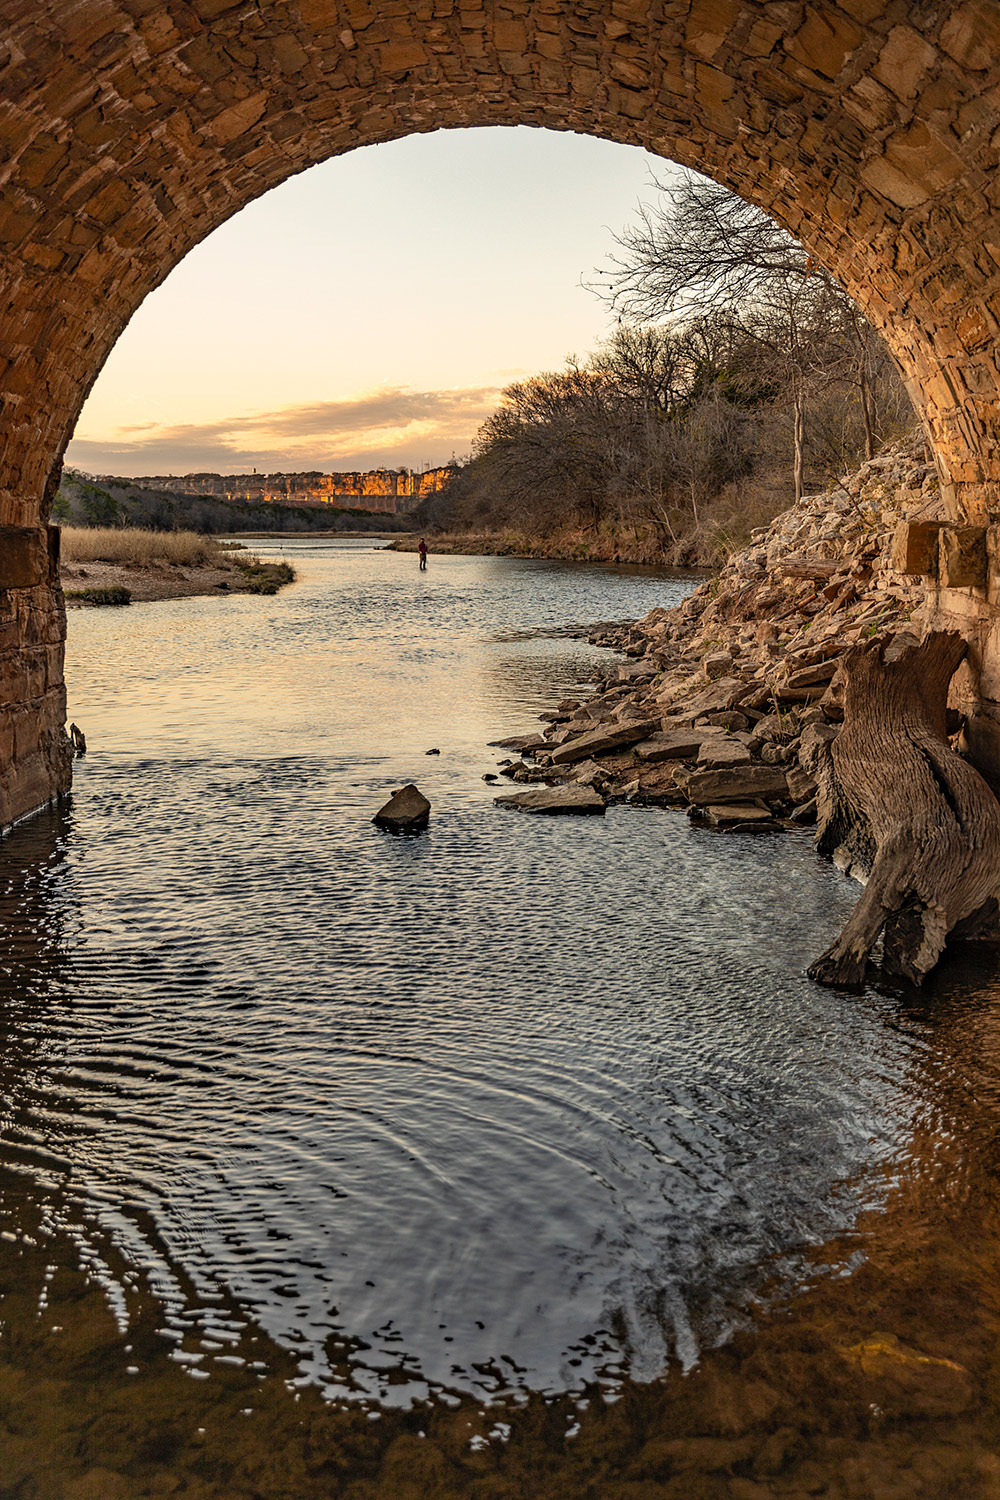 Bridge Arch over the Brazos River on Highway 16